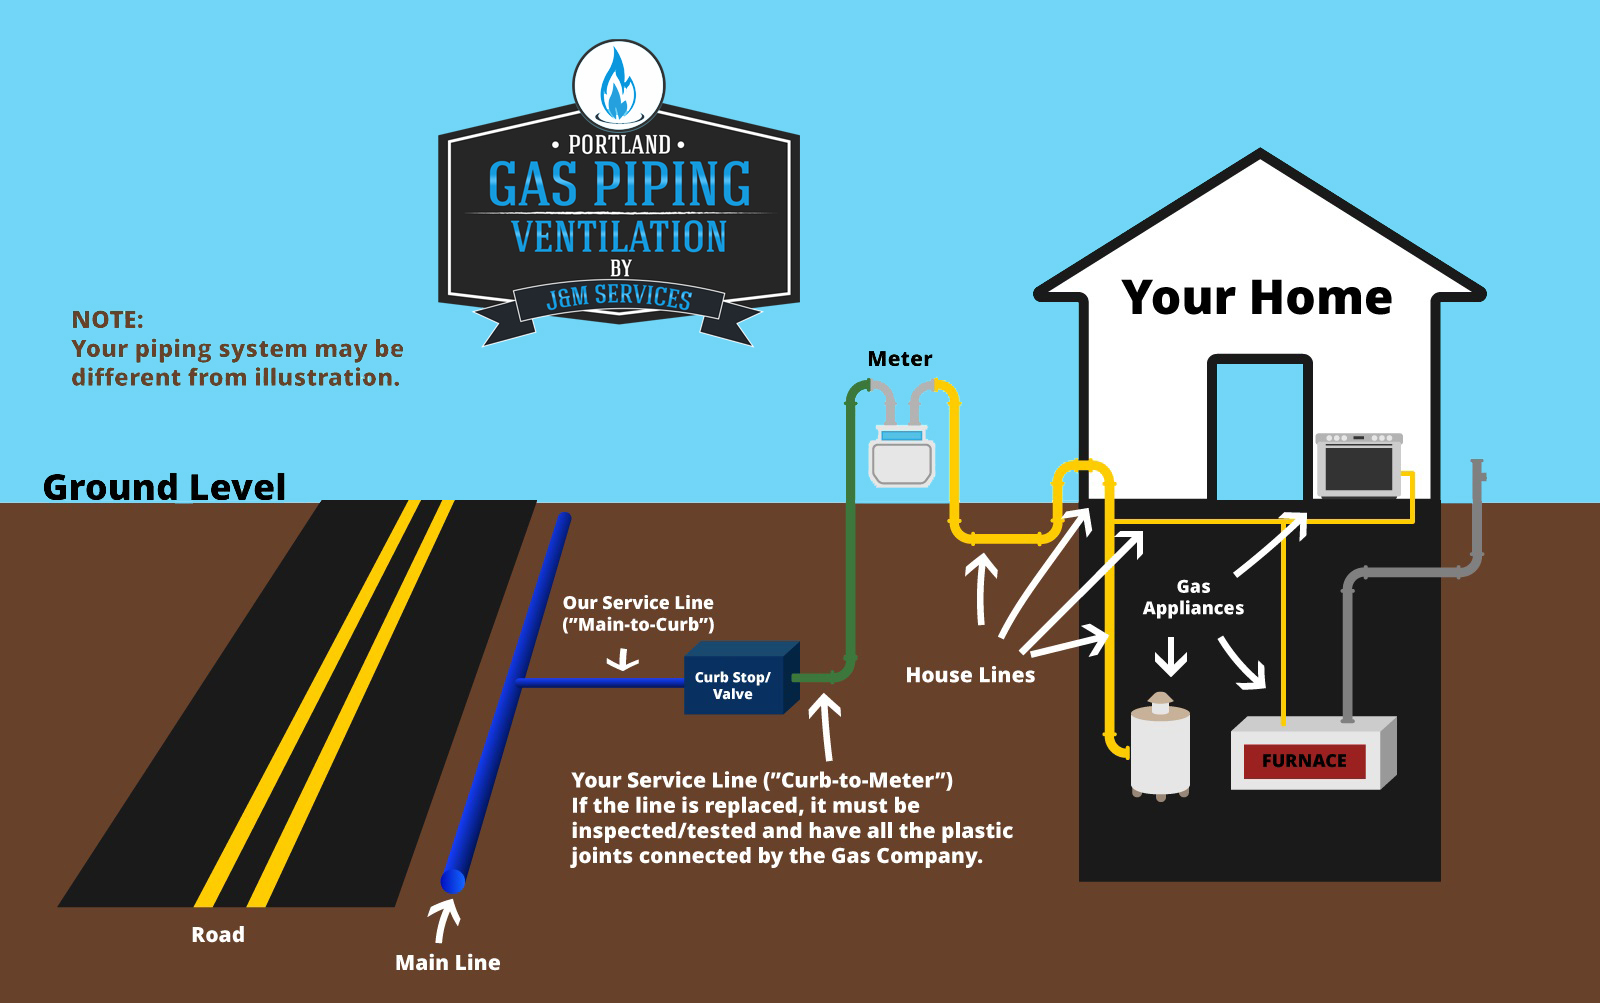 residential gas piping diagram northwest oregon - portland or  sc 1 st  Portland Gas Piping u0026 Ventilation & Portland Gas Piping and Ventilation Services Call Us For a Full List